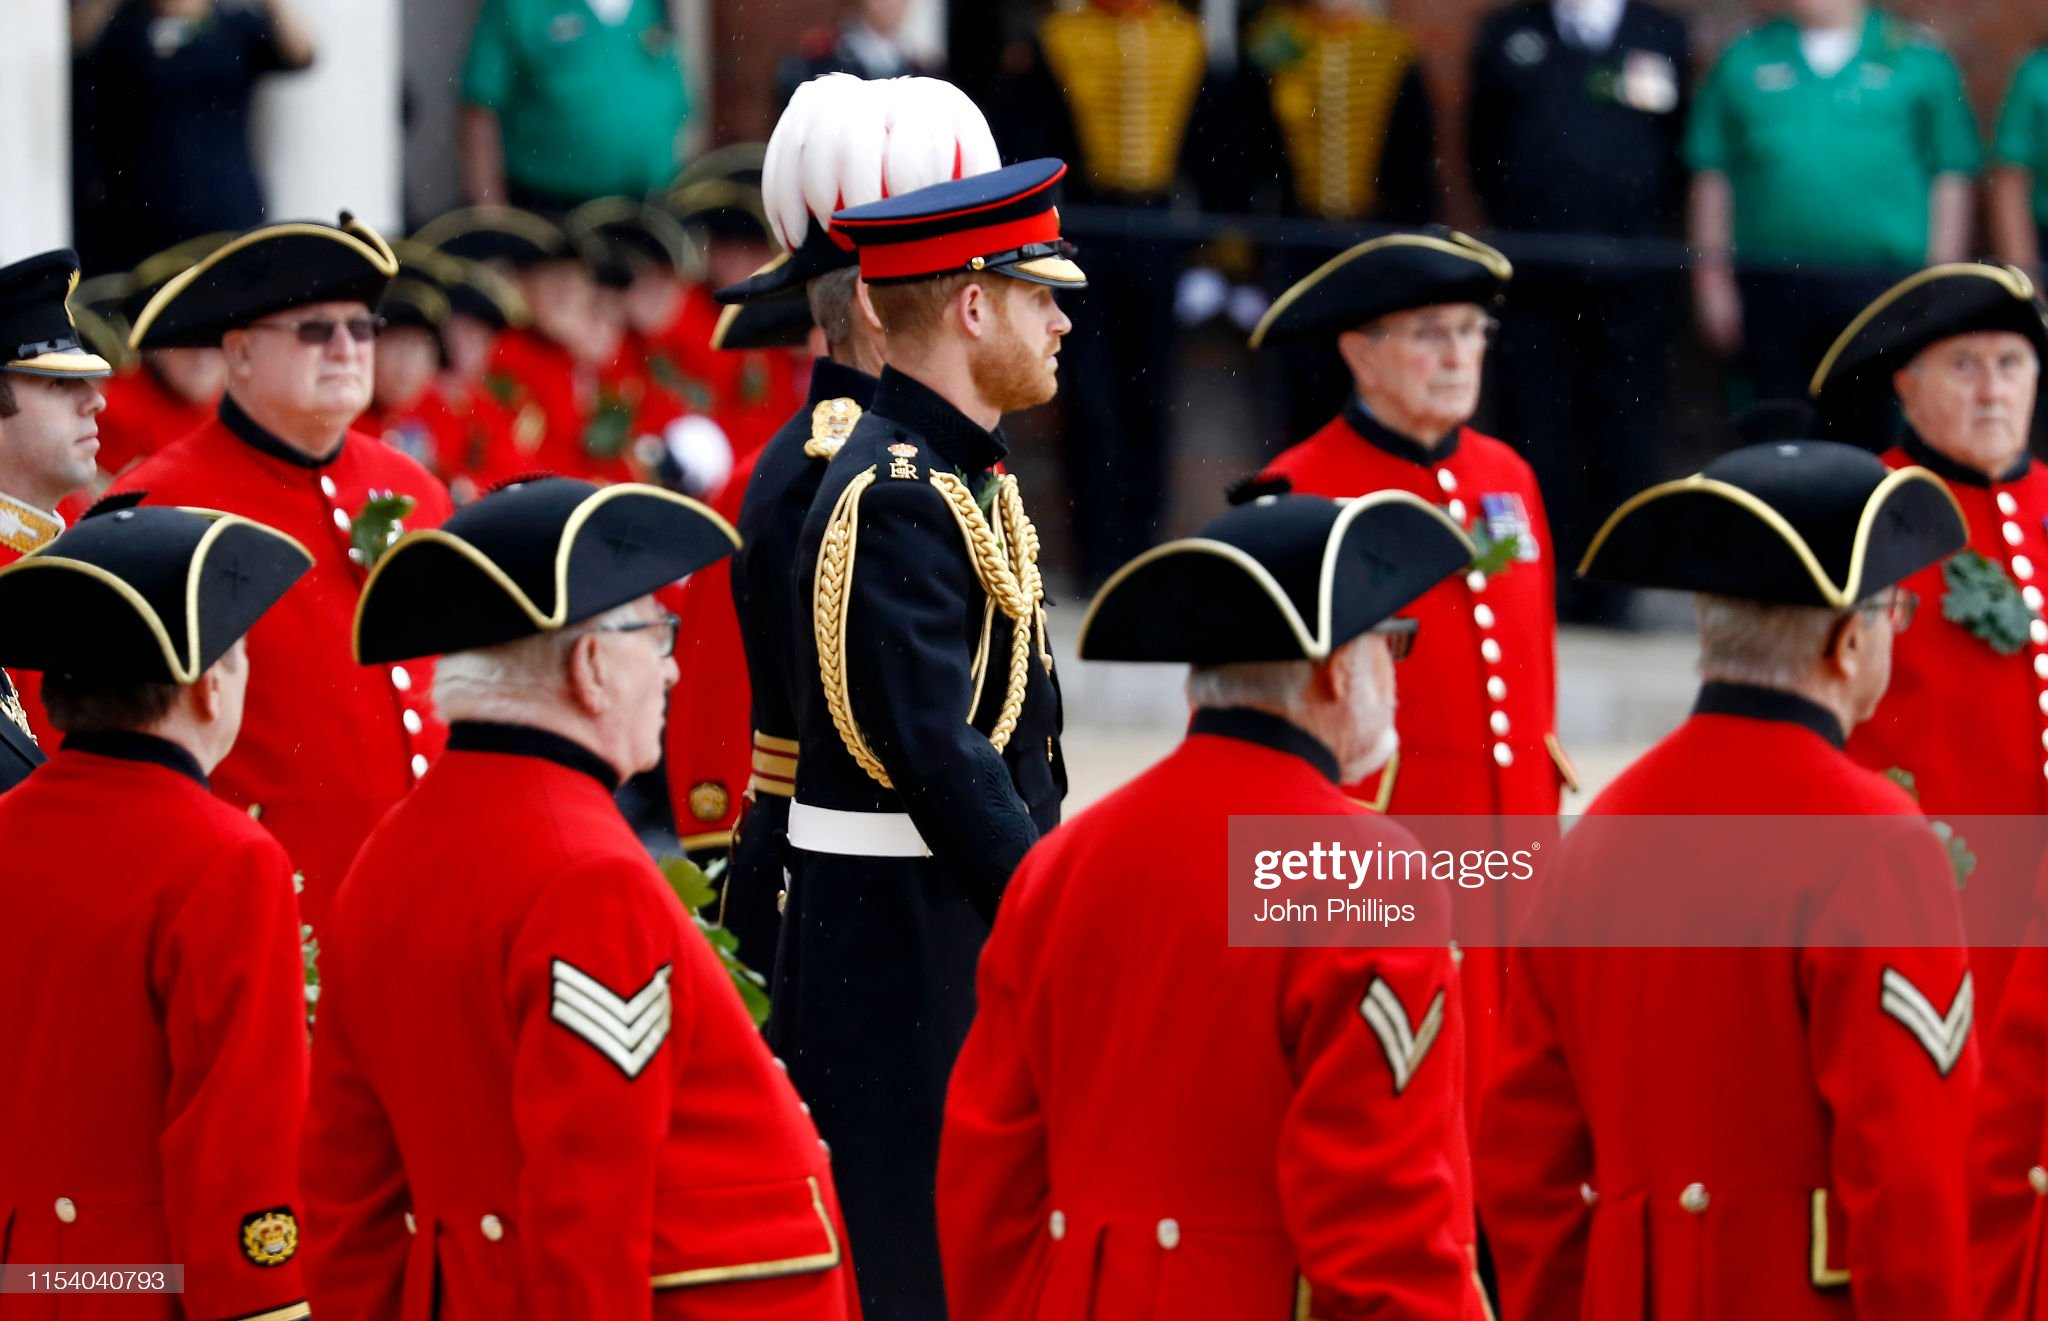 prince-harry-duke-of-sussex-attends-the-annual-founders-day-parade-at-picture-id1154040793